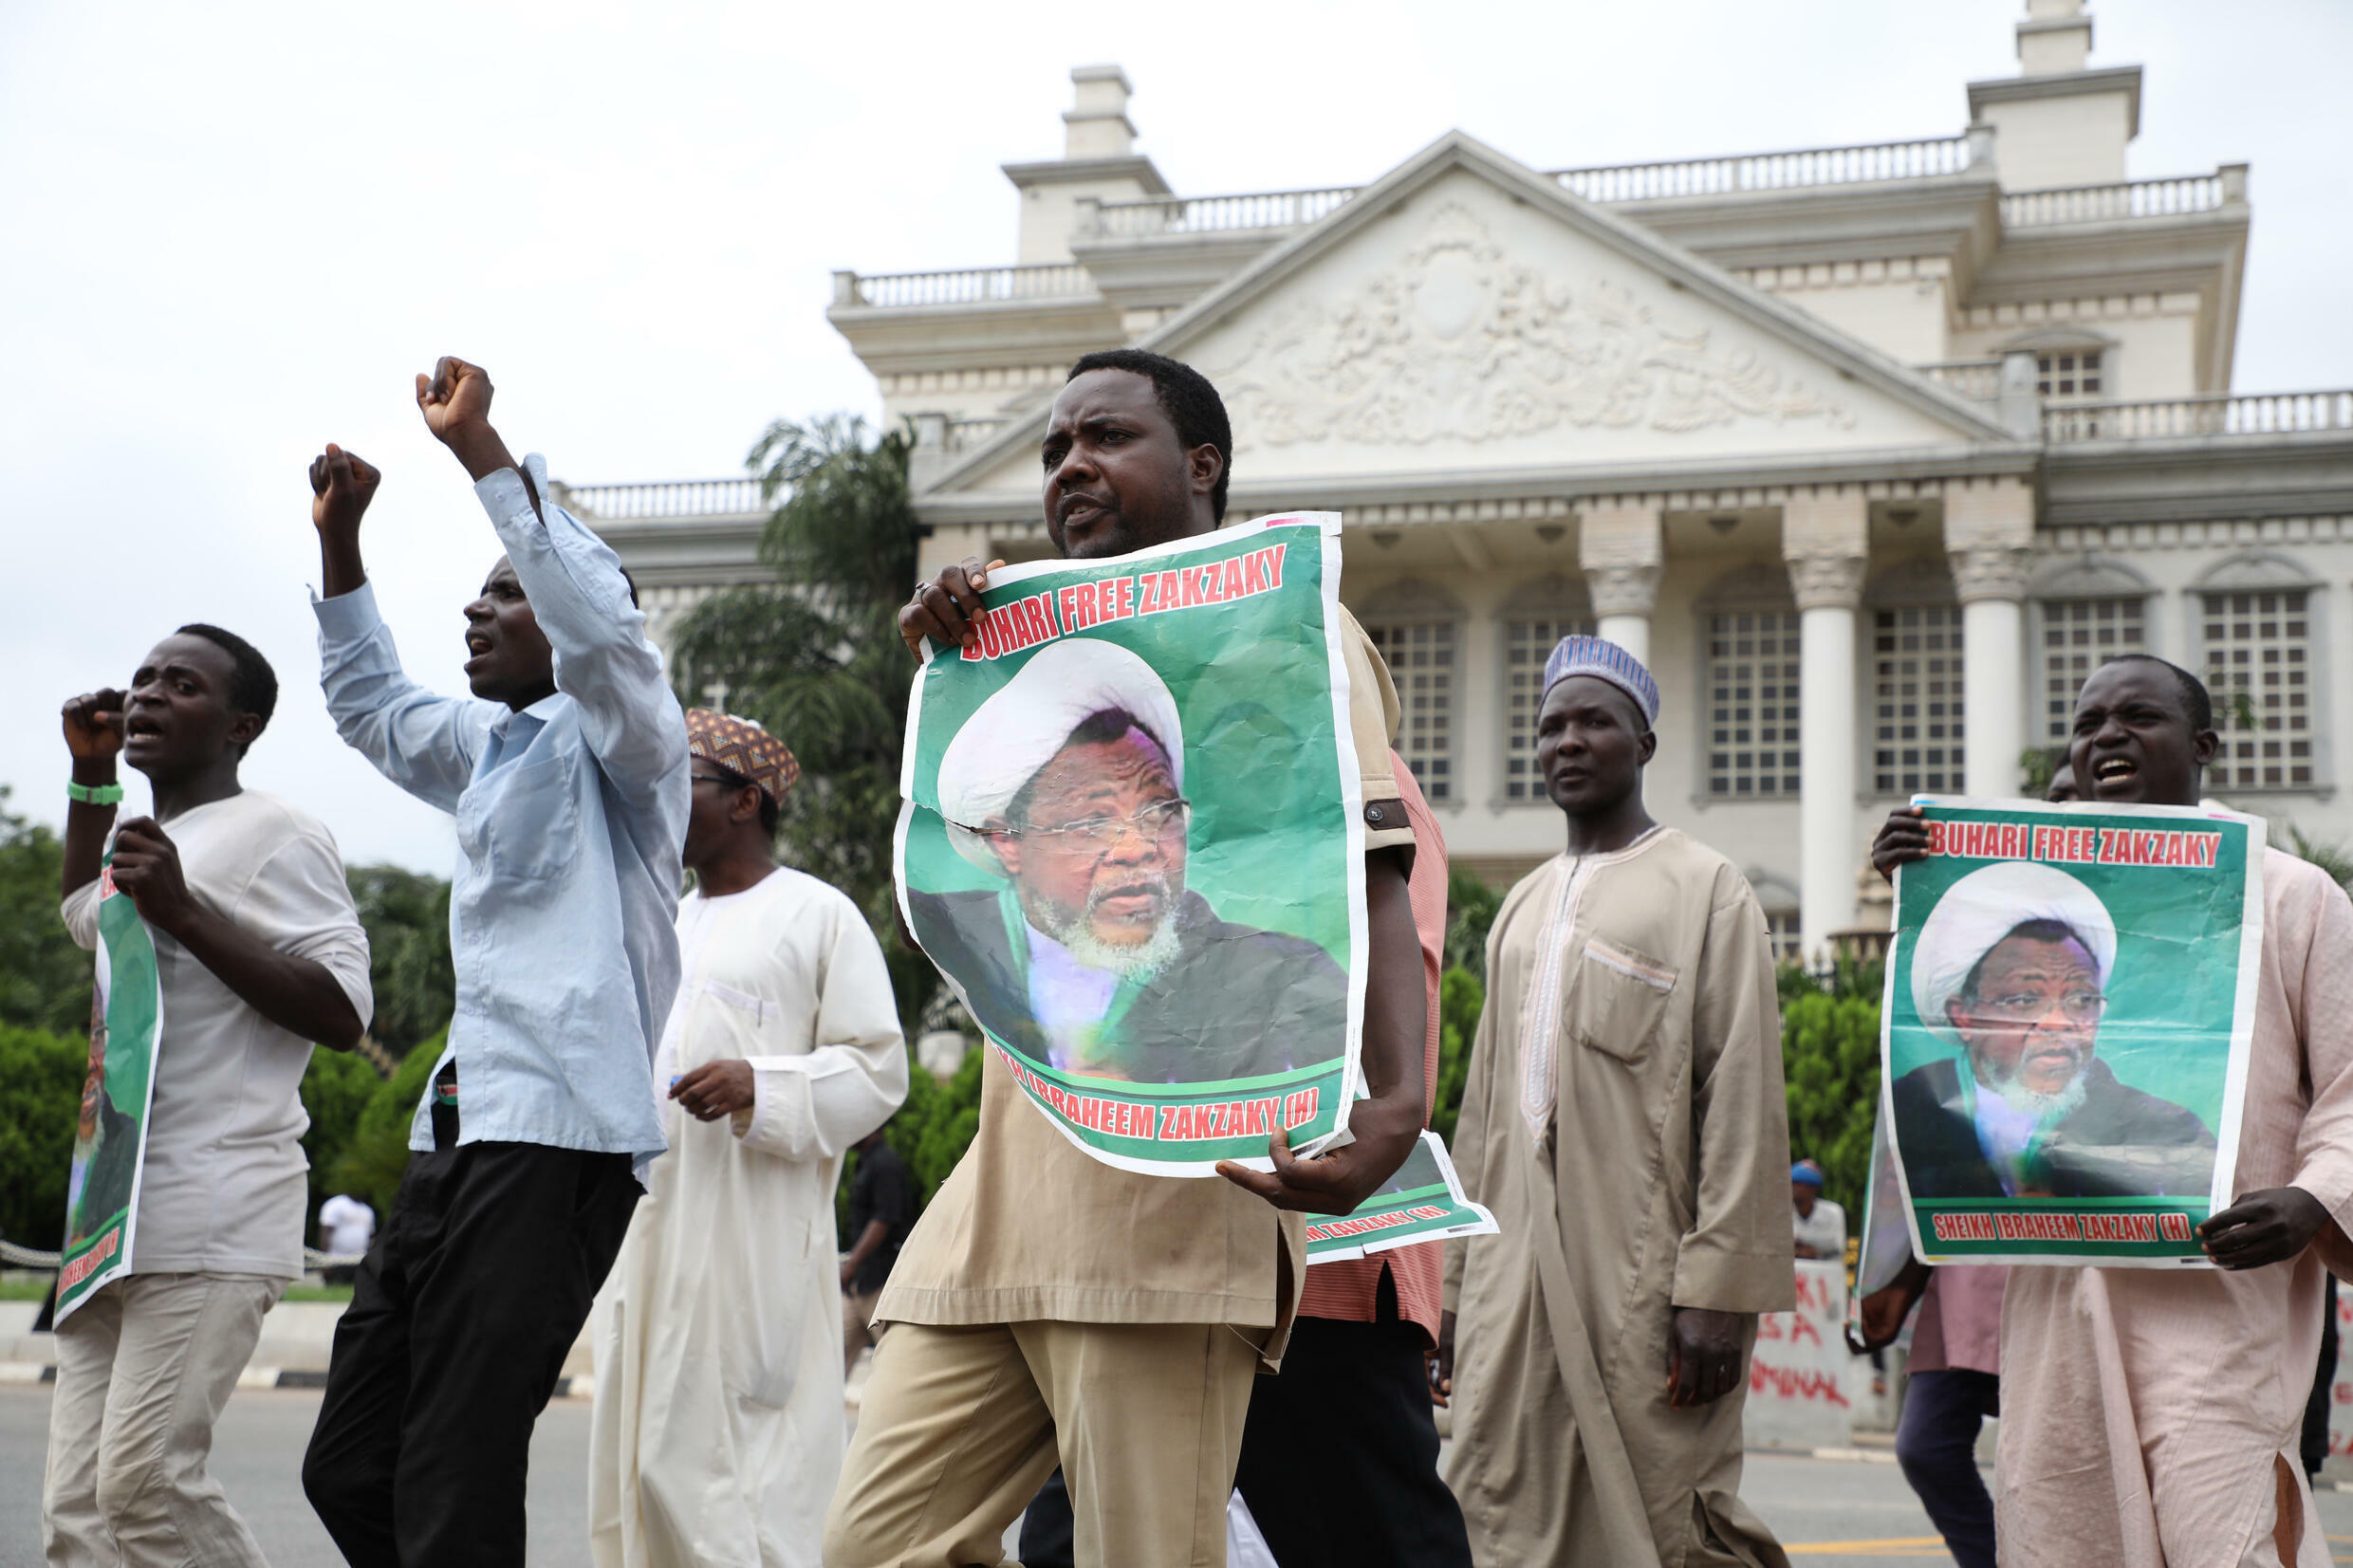 Hundreds of supporters of Shiite Muslim leader Ibrahim Zakzaky demonstrate in Abuja, on July 10, 2019, to demand his release